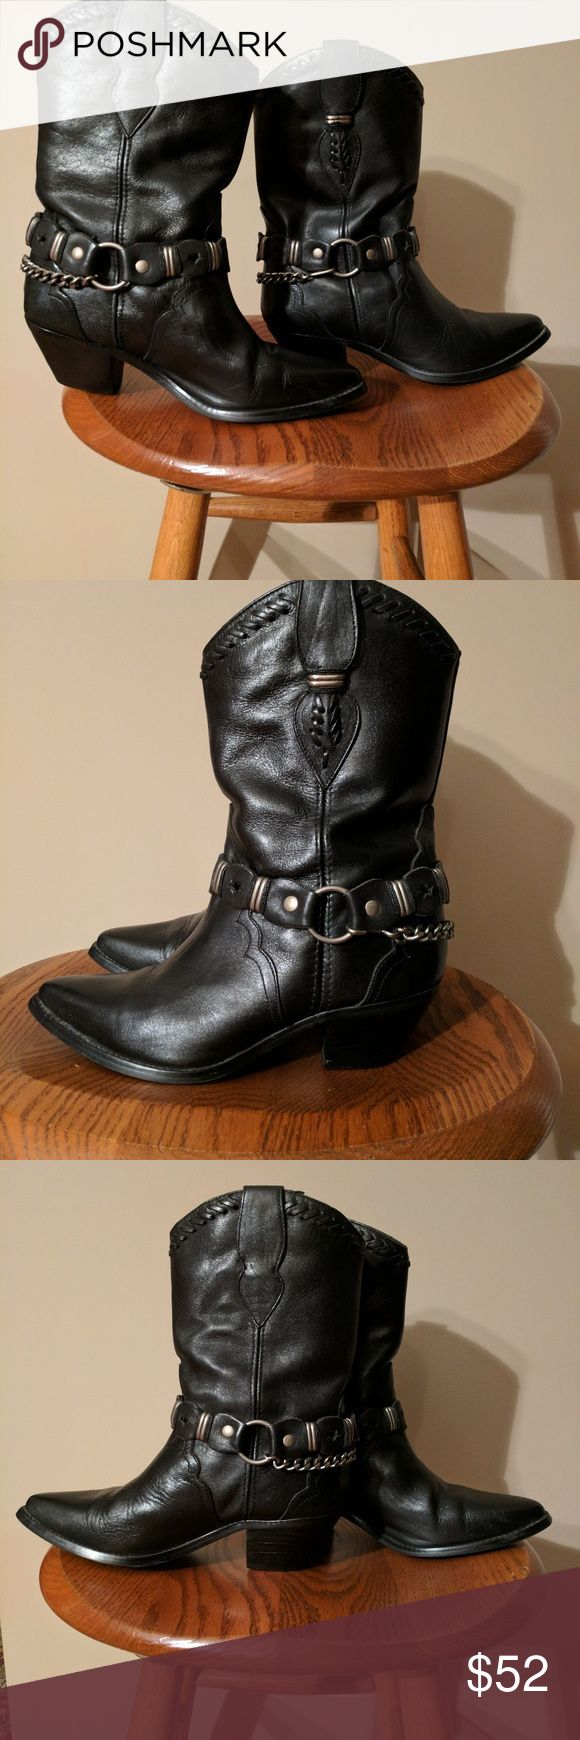 Black Leather Harness Boots Code West black leather harness boots in very nice preowned condition.  Leather strap can be removed from boot.  Size 6 1/2.  Made in Brazil. Code West Shoes Winter & Rain Boots